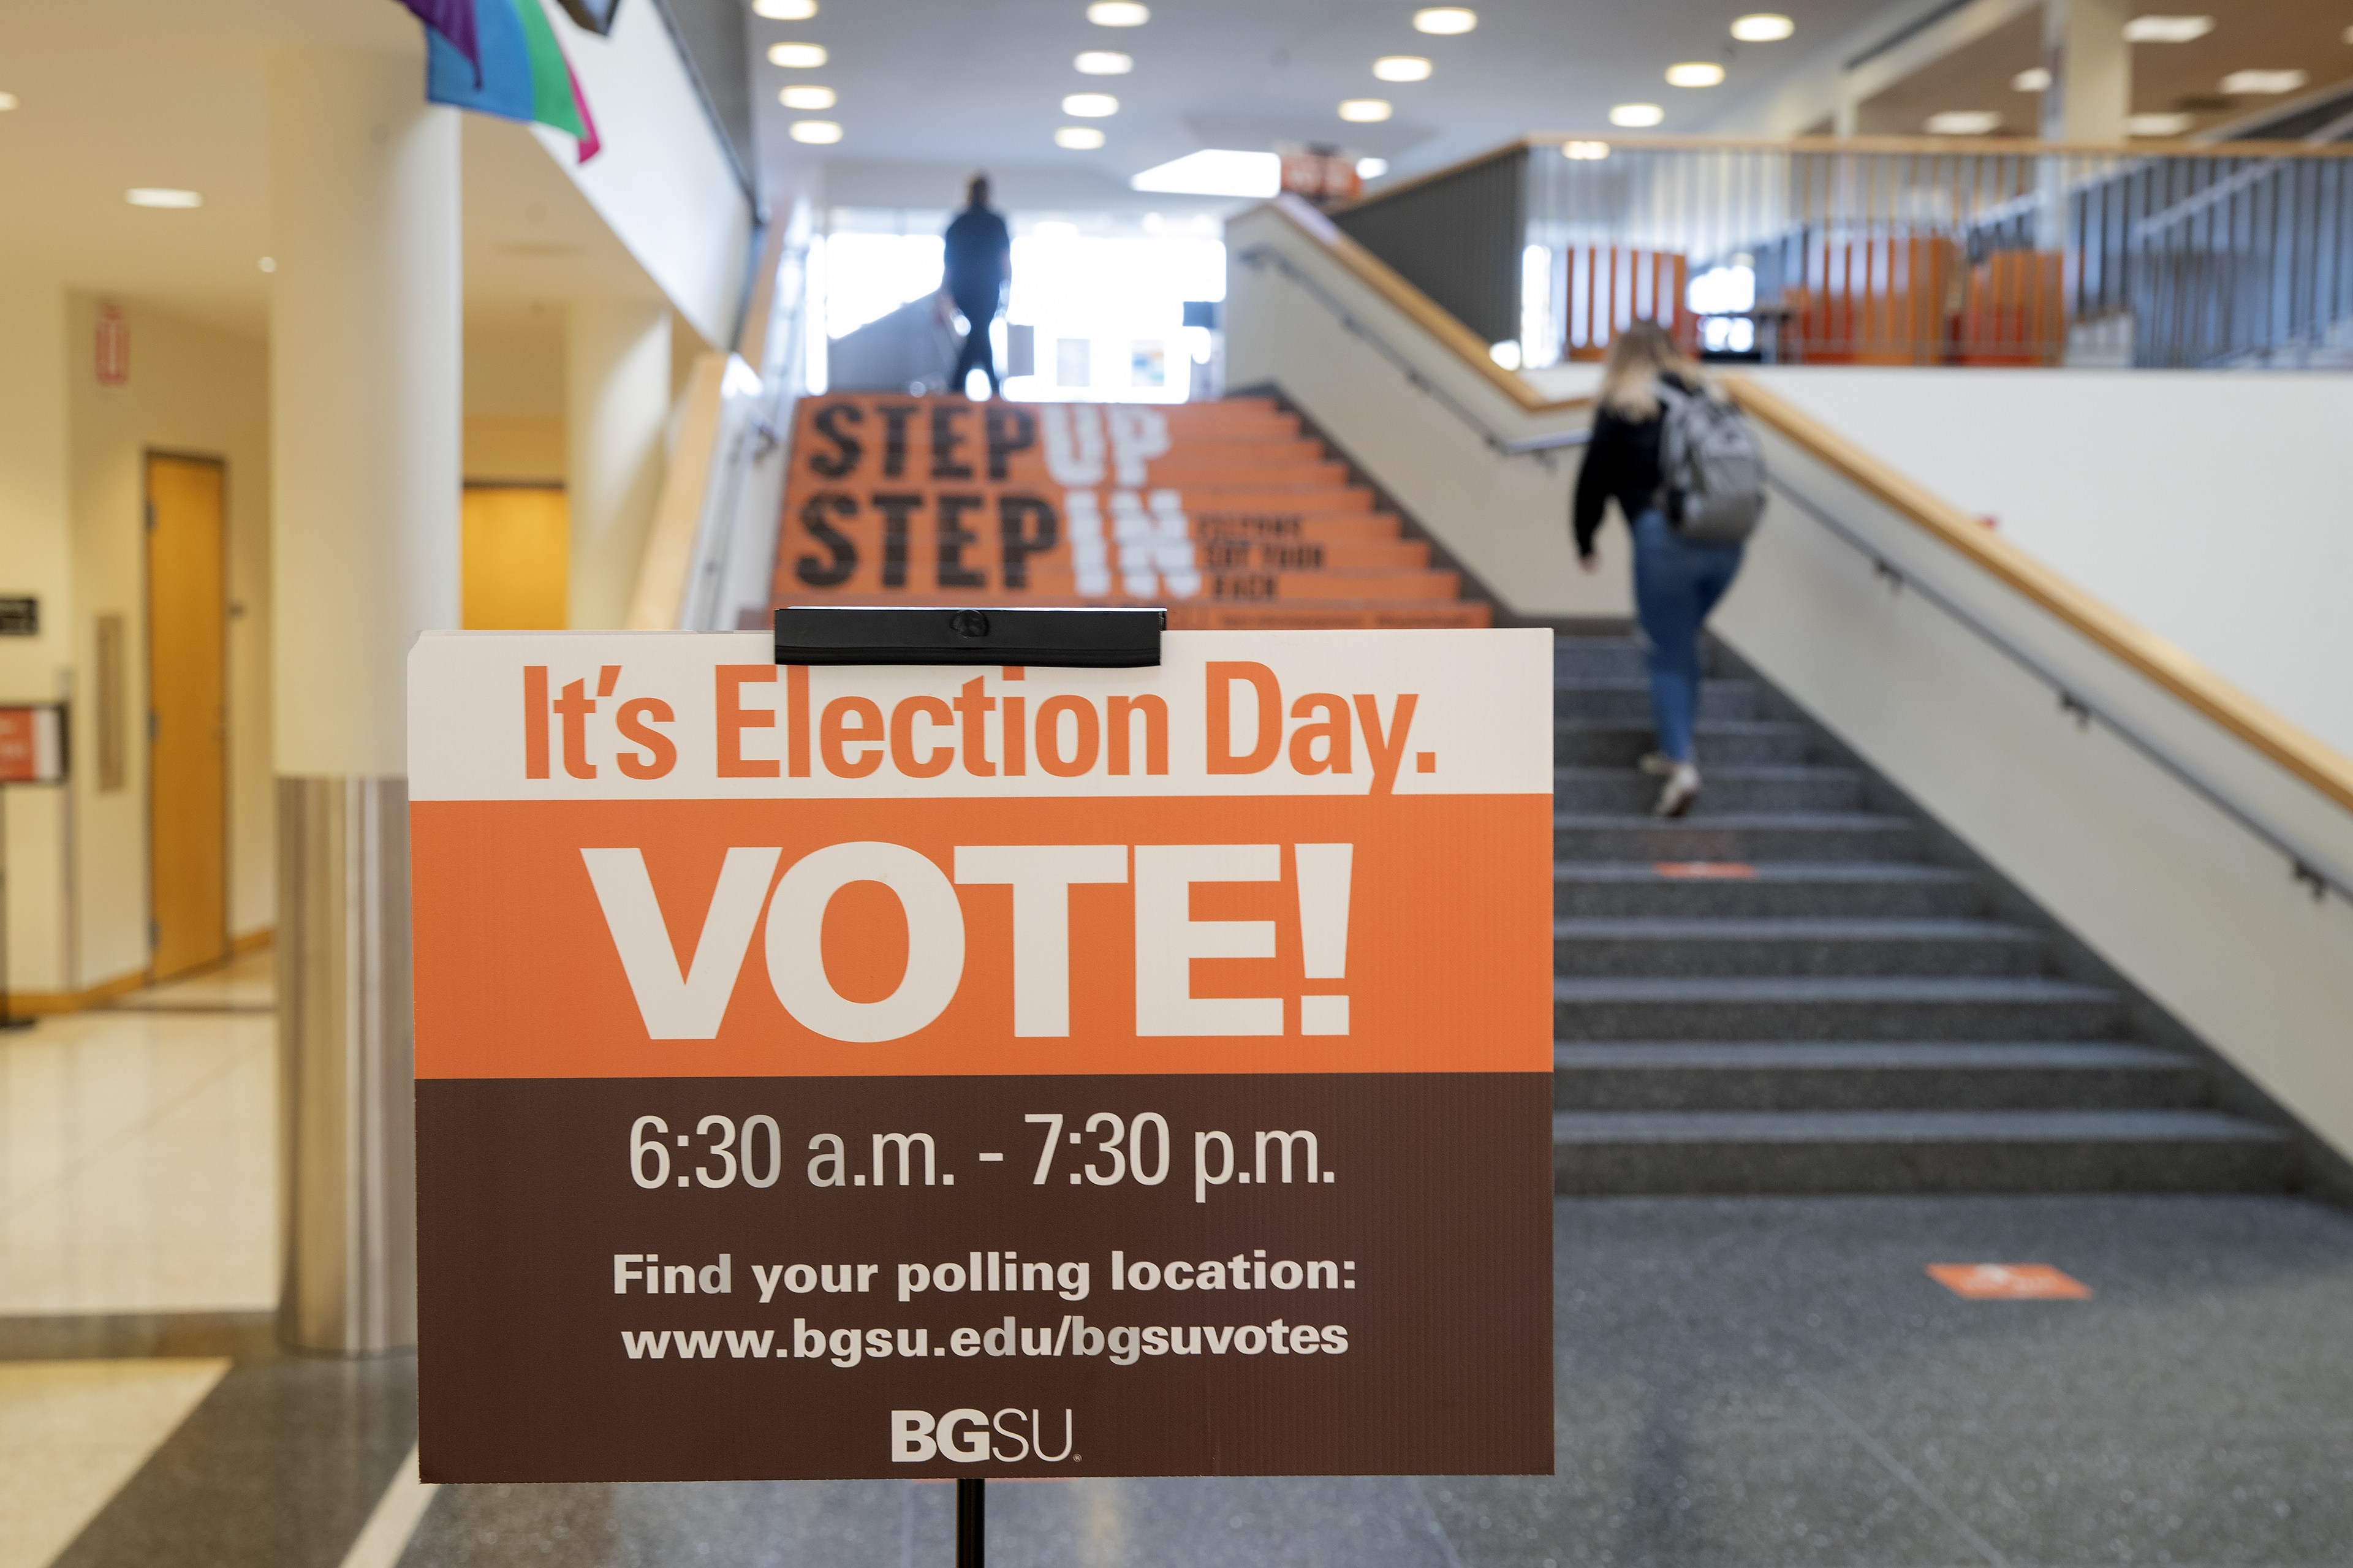 Photo of sign that states BGSU Election day. Vote. 6:30 a.m. to 7:30 p.m. Find your polling place bgsu.edu/bgsuvotes